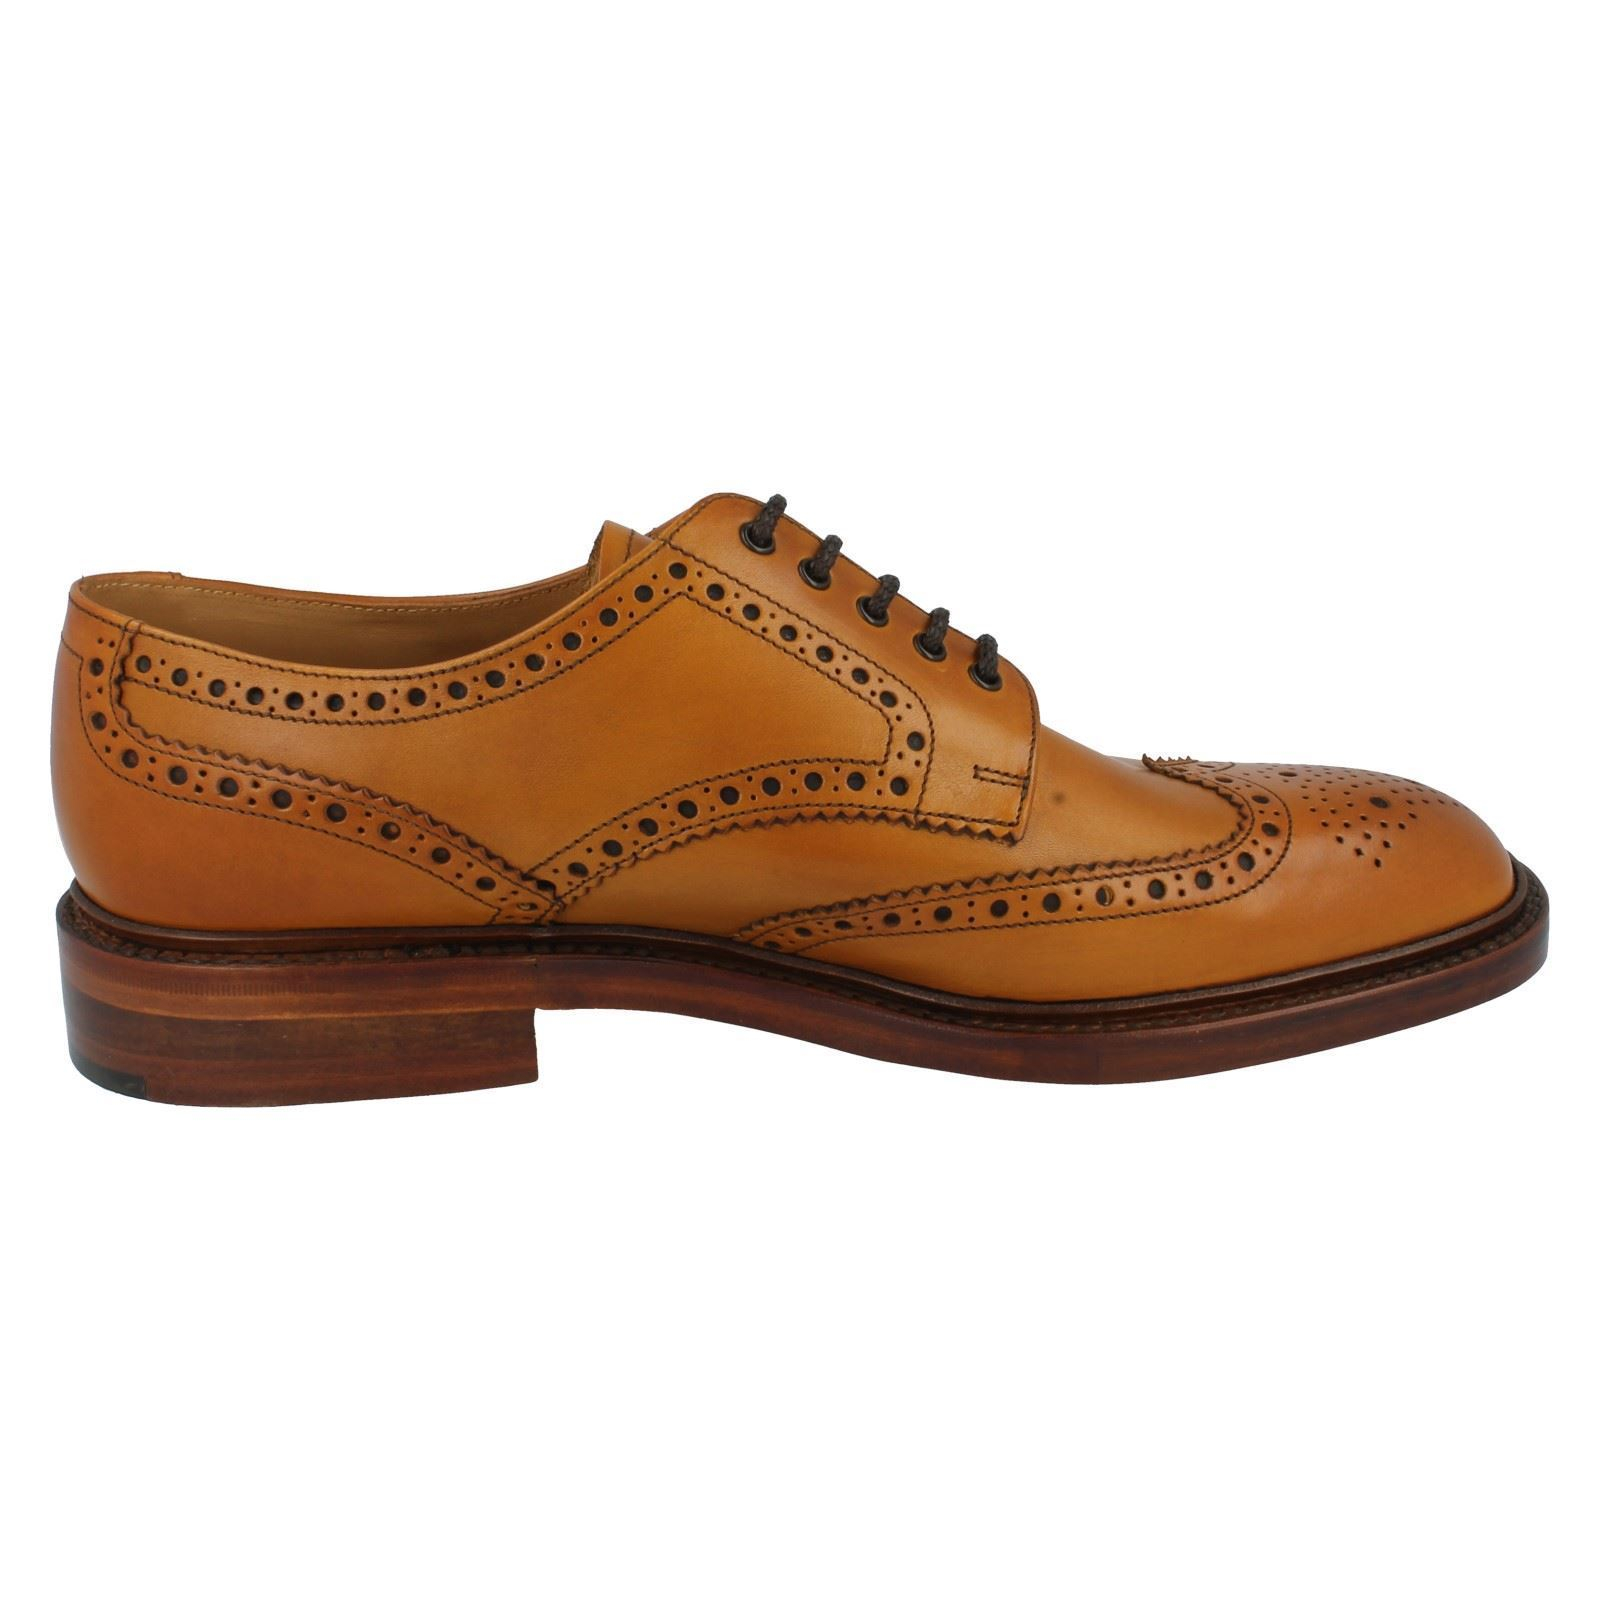 Mens Loake Formal Brogues Chester - Chester Brogues 2 f48623